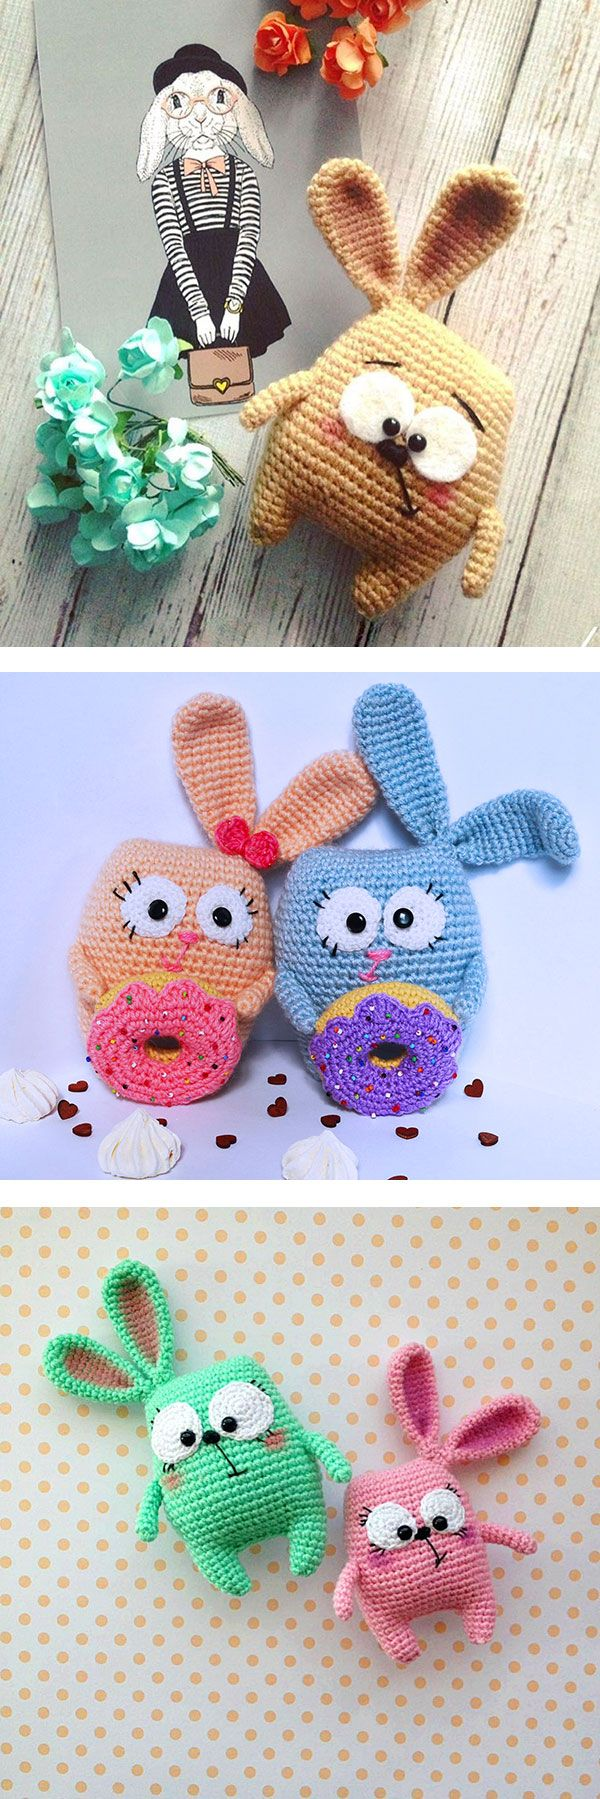 1090 best hraky pro dti knitted and crochet toys images on baby knitting patterns baby knitting patterns bunnies made with the help of this free pattern ami baby knitting patterns source baby knitting patterns bankloansurffo Image collections